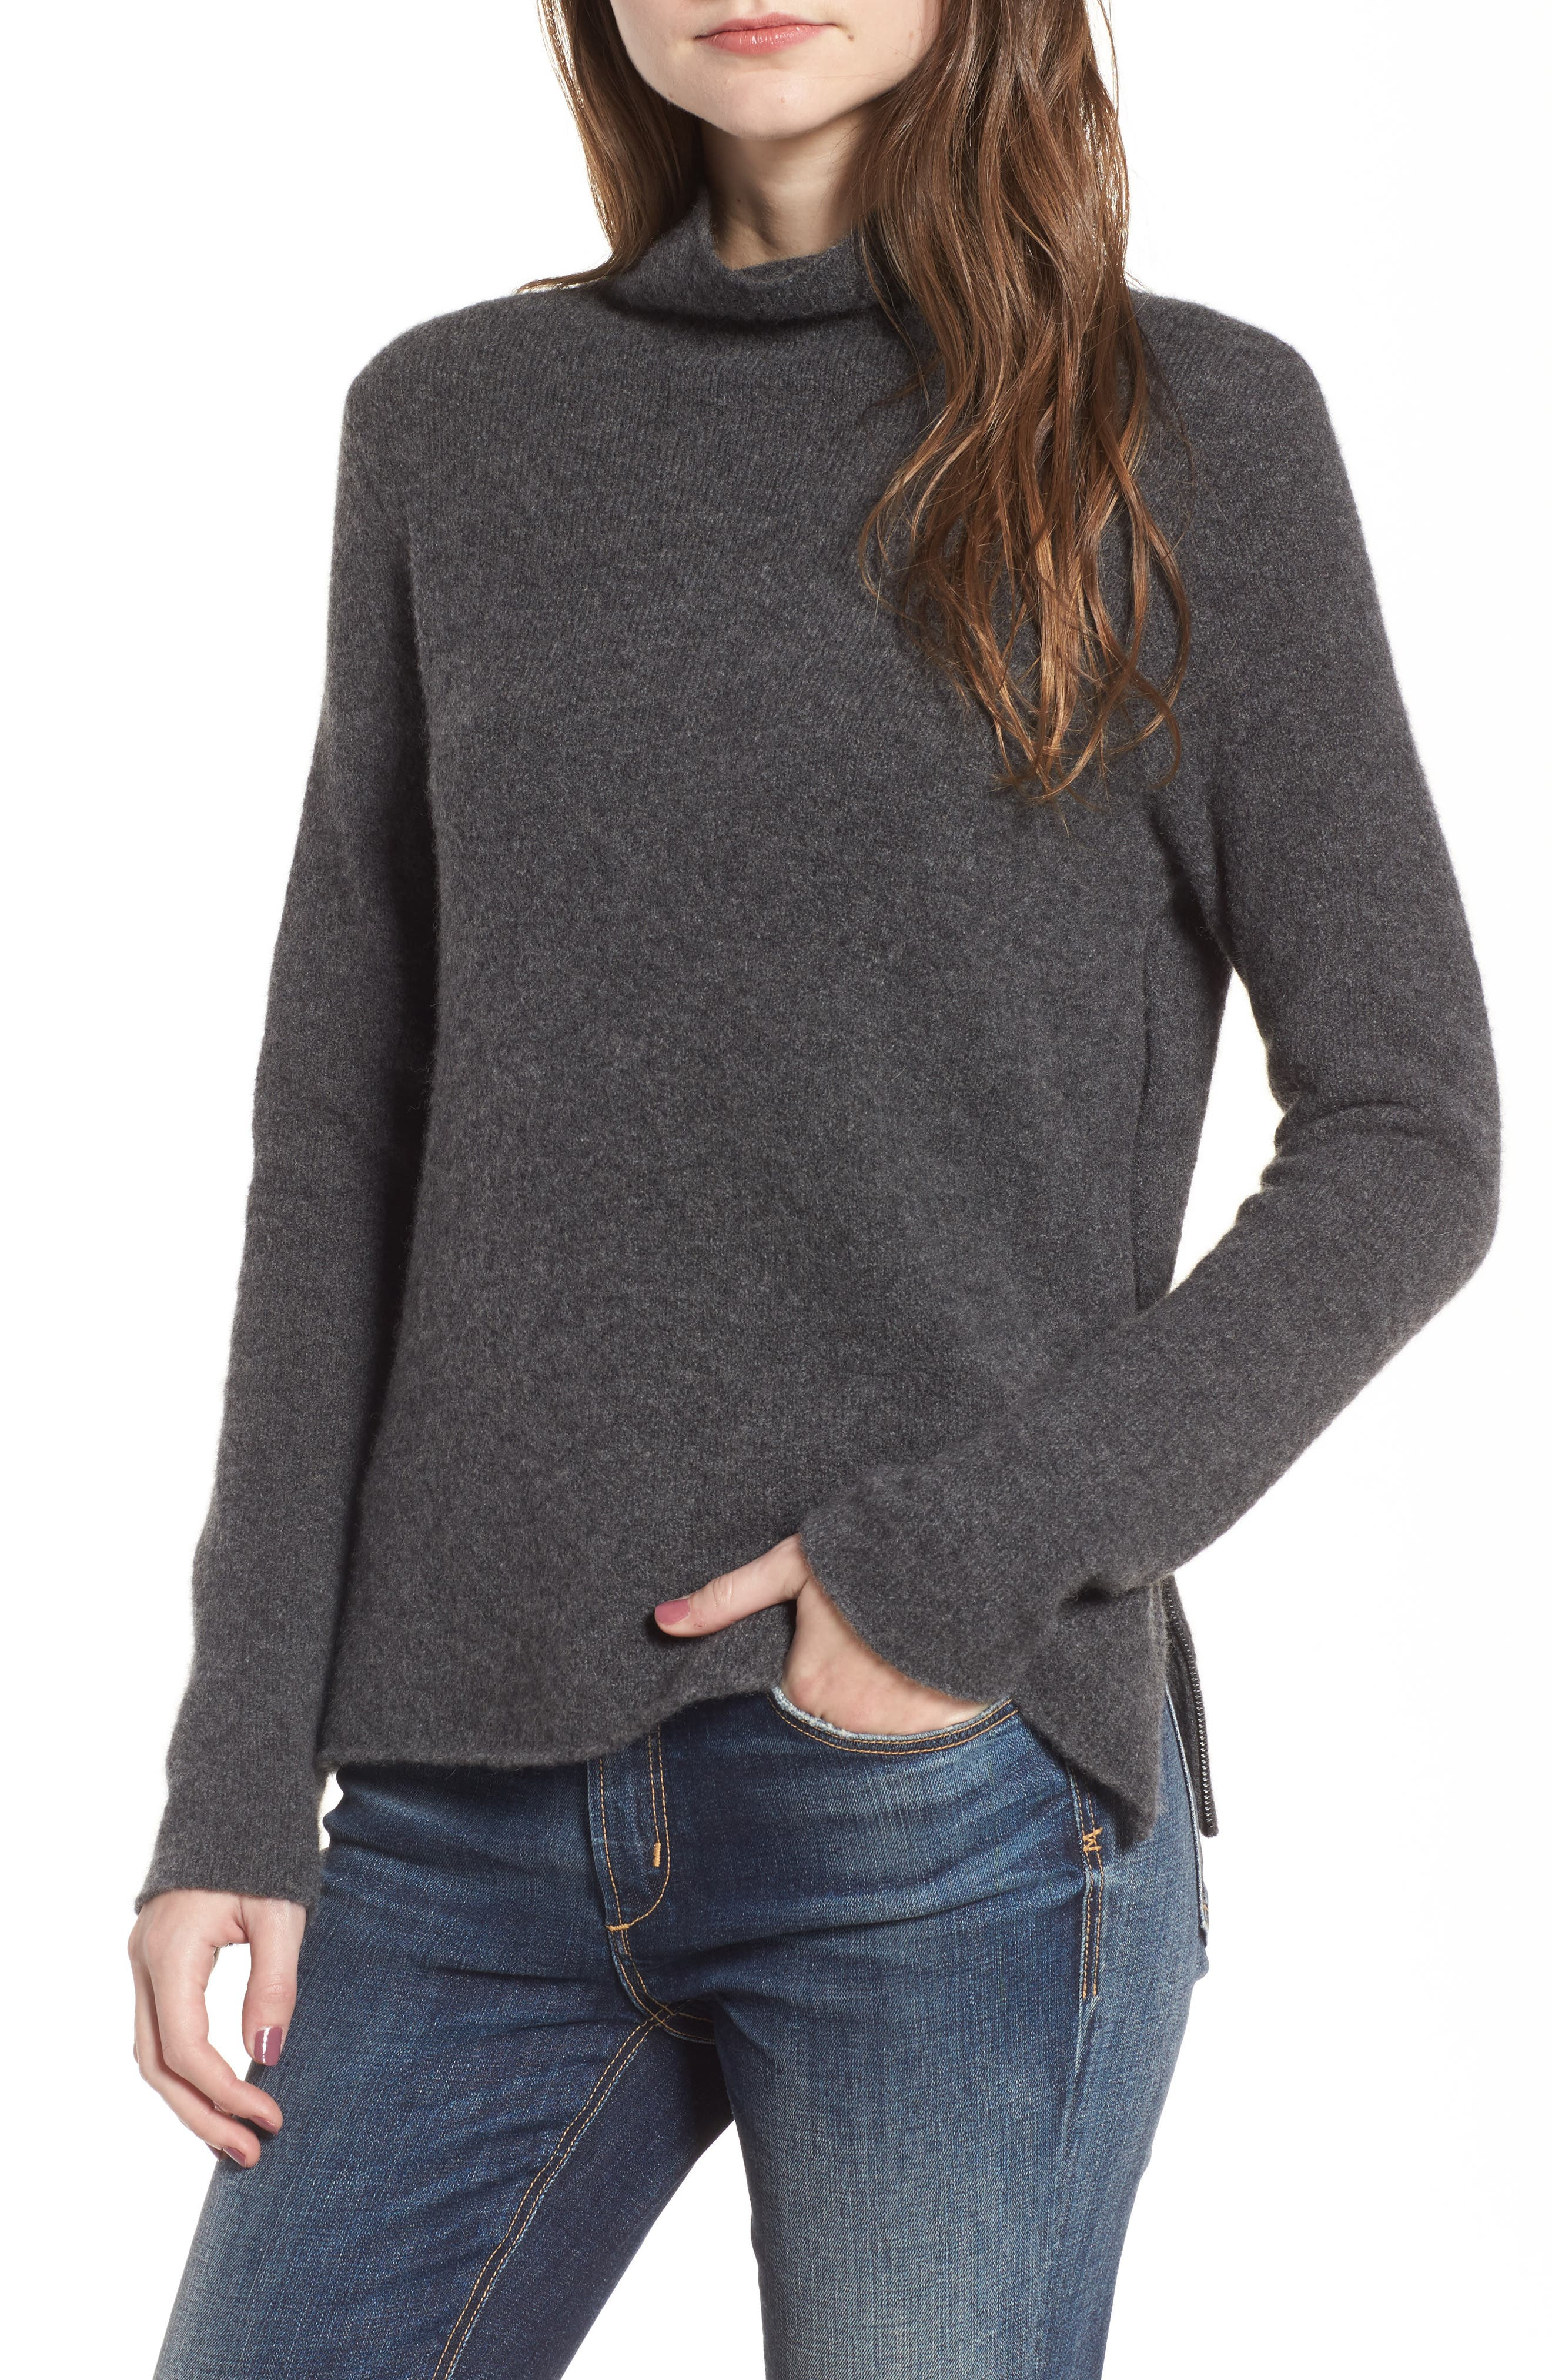 Main Image - James Perse Stretch Cashmere Mock Neck Sweater